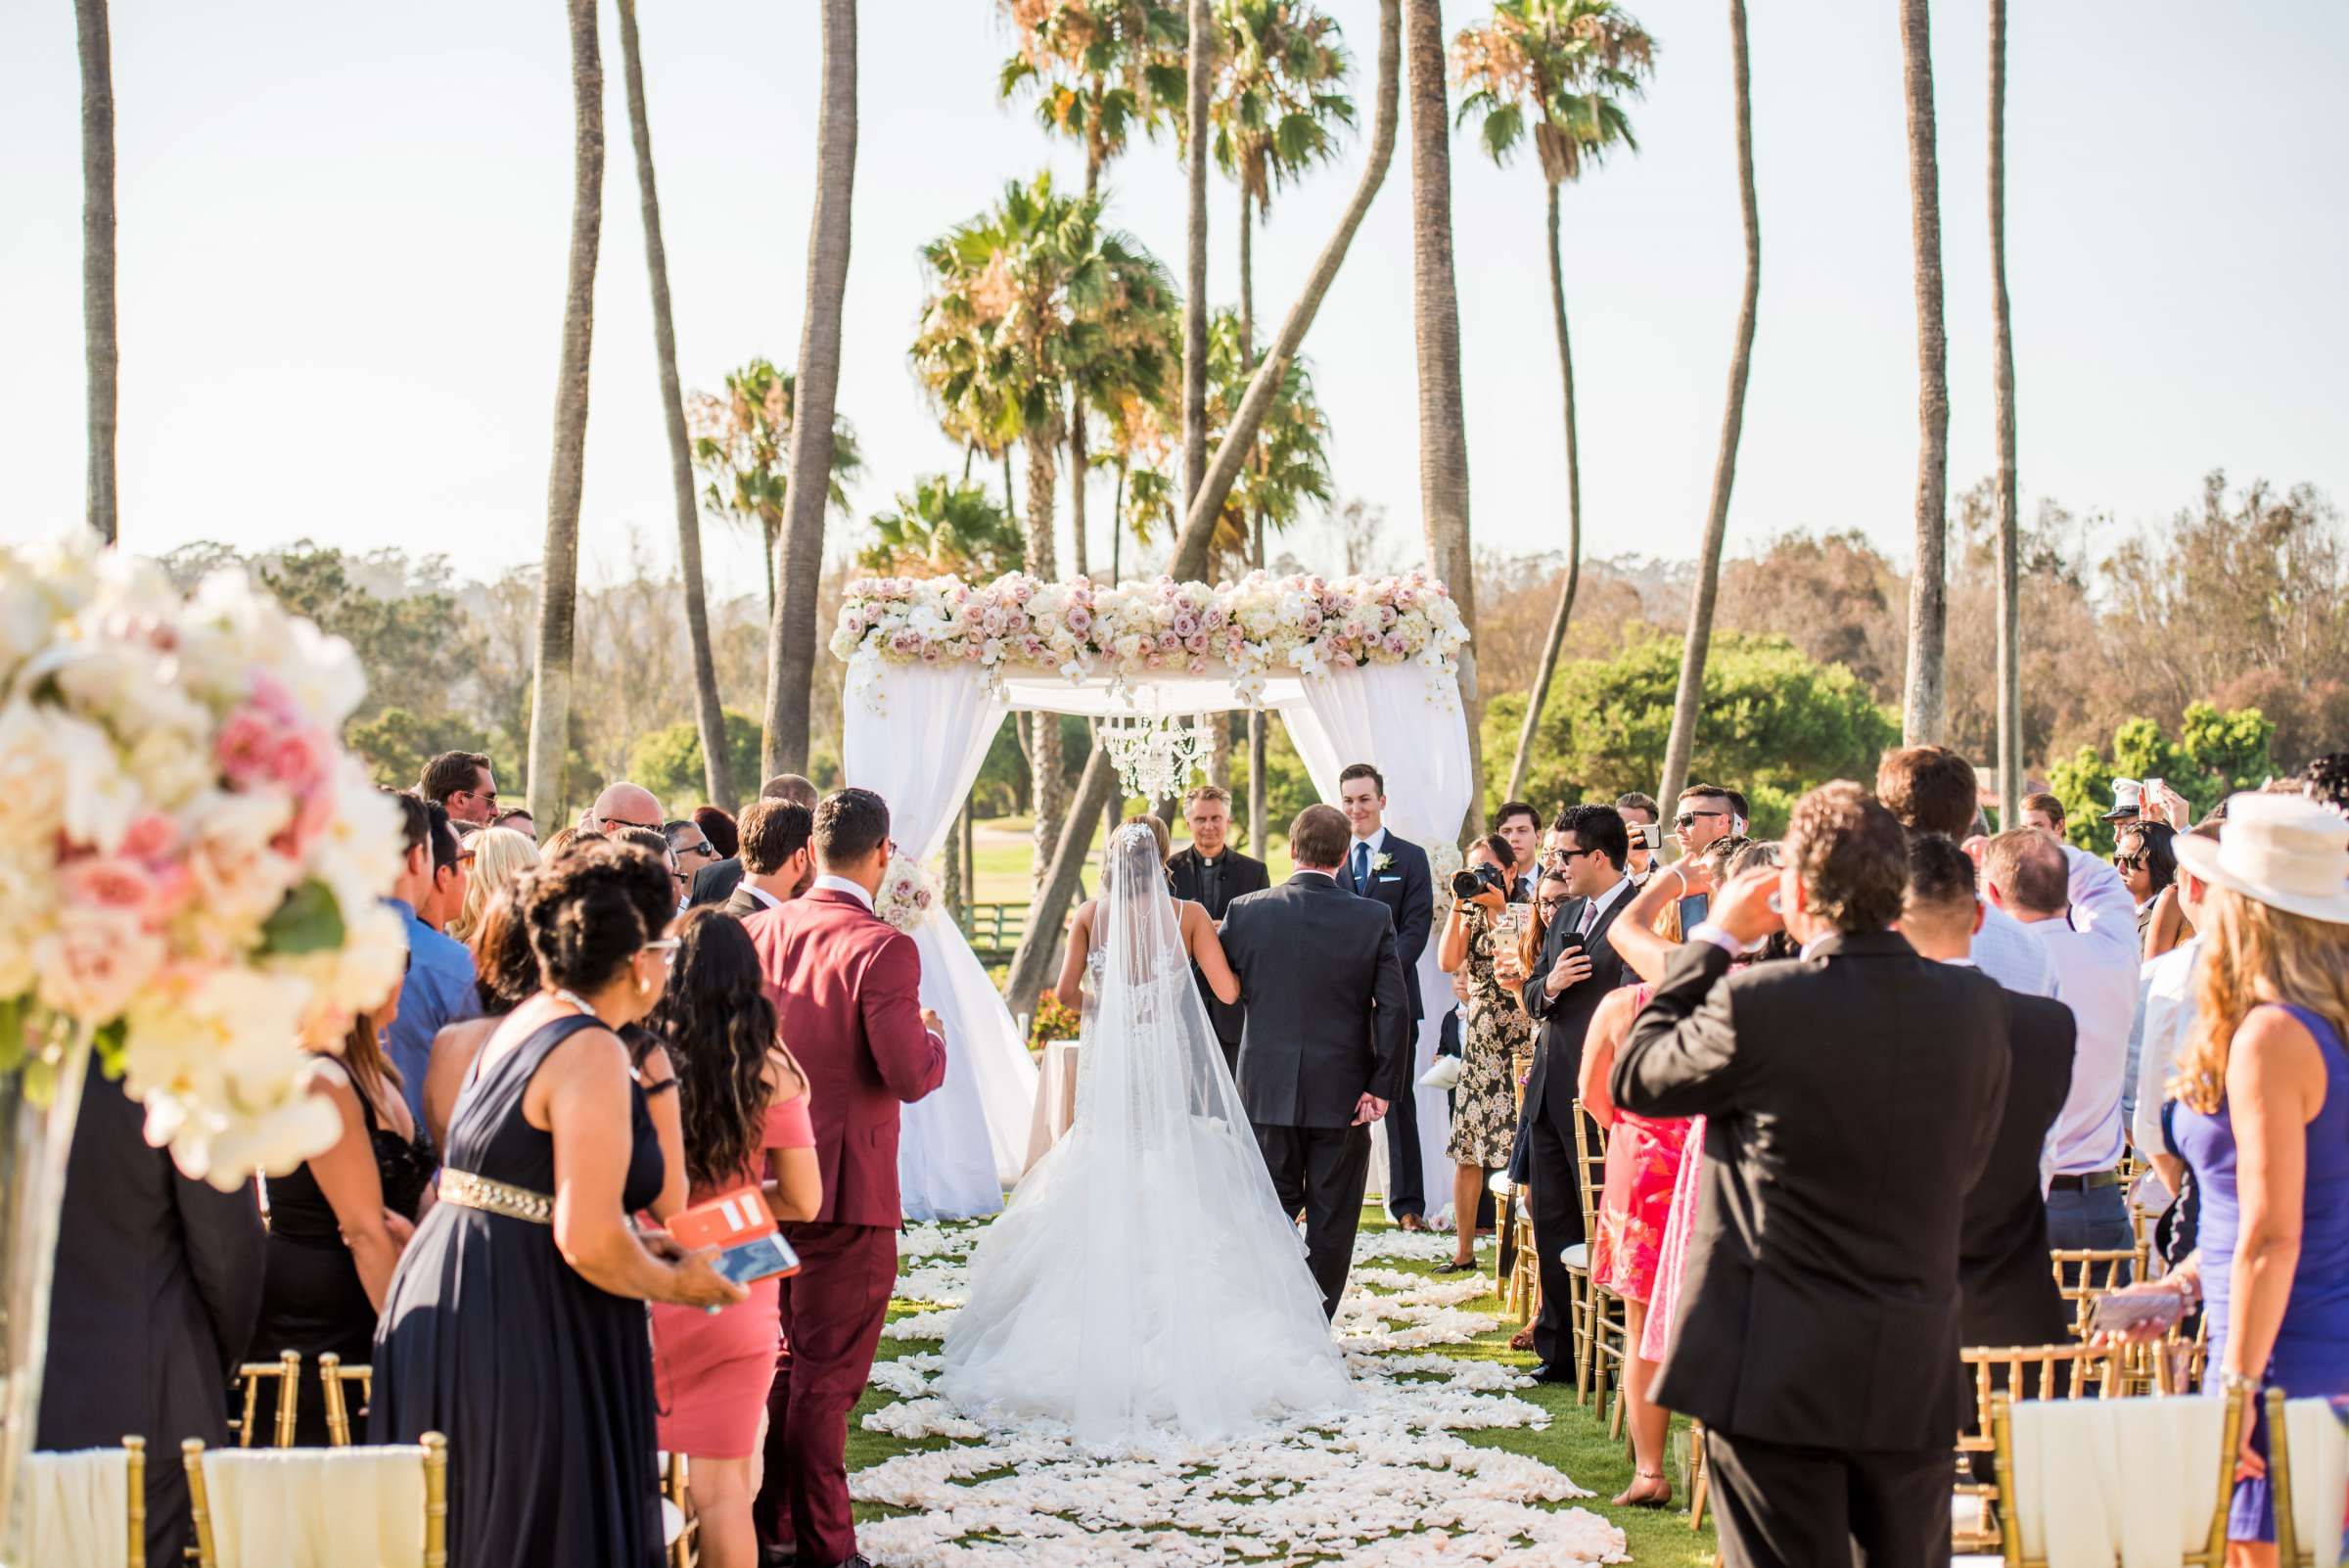 Fairbanks Ranch Country Club Wedding coordinated by Monarch Weddings, Gabriella and Kyle Wedding Photo #14 by True Photography